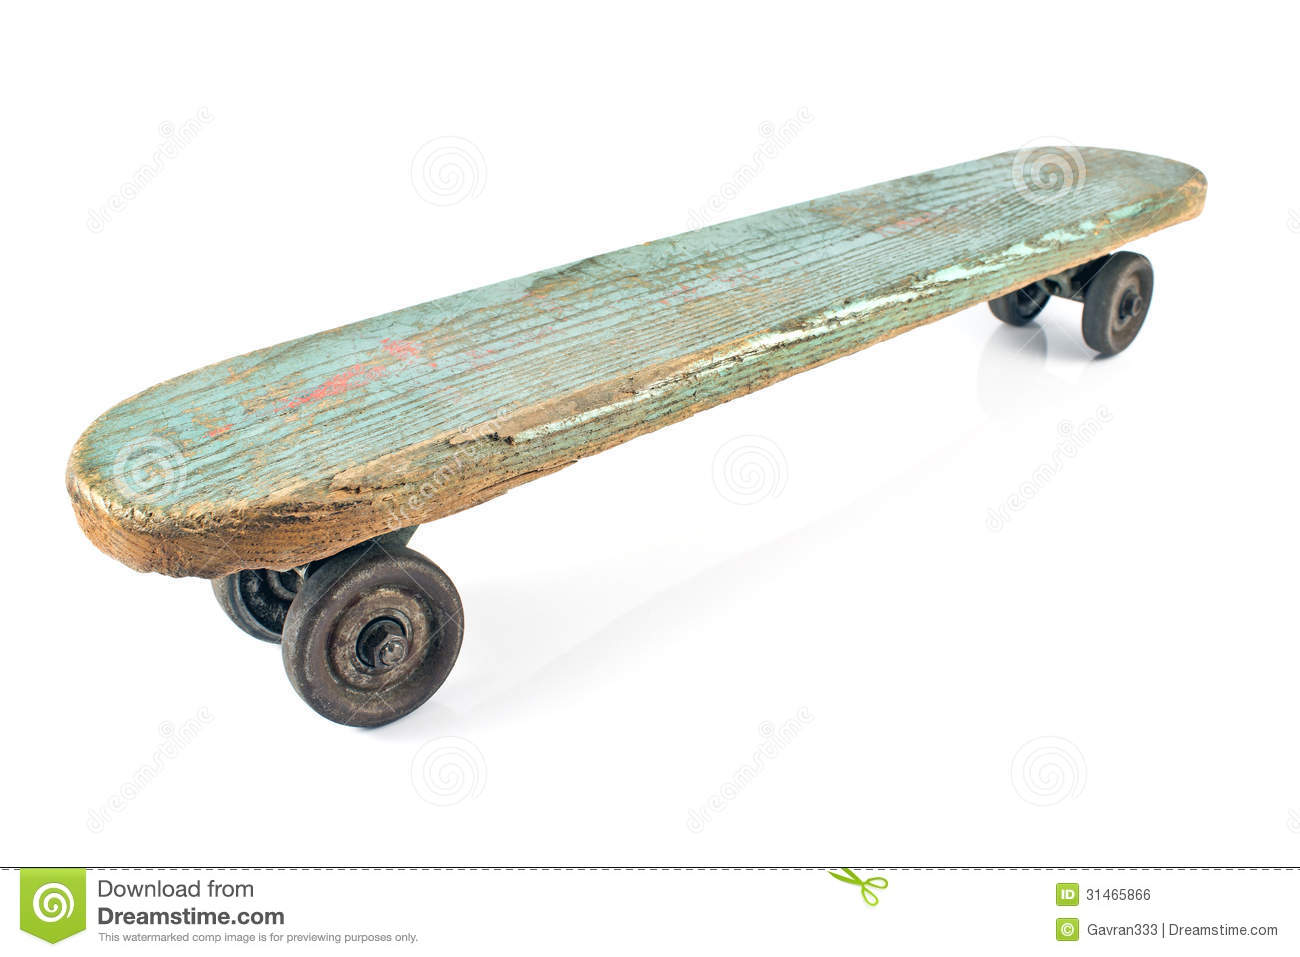 Old Wooden Skateboard Royalty Free Stock Image - Image: 31465866